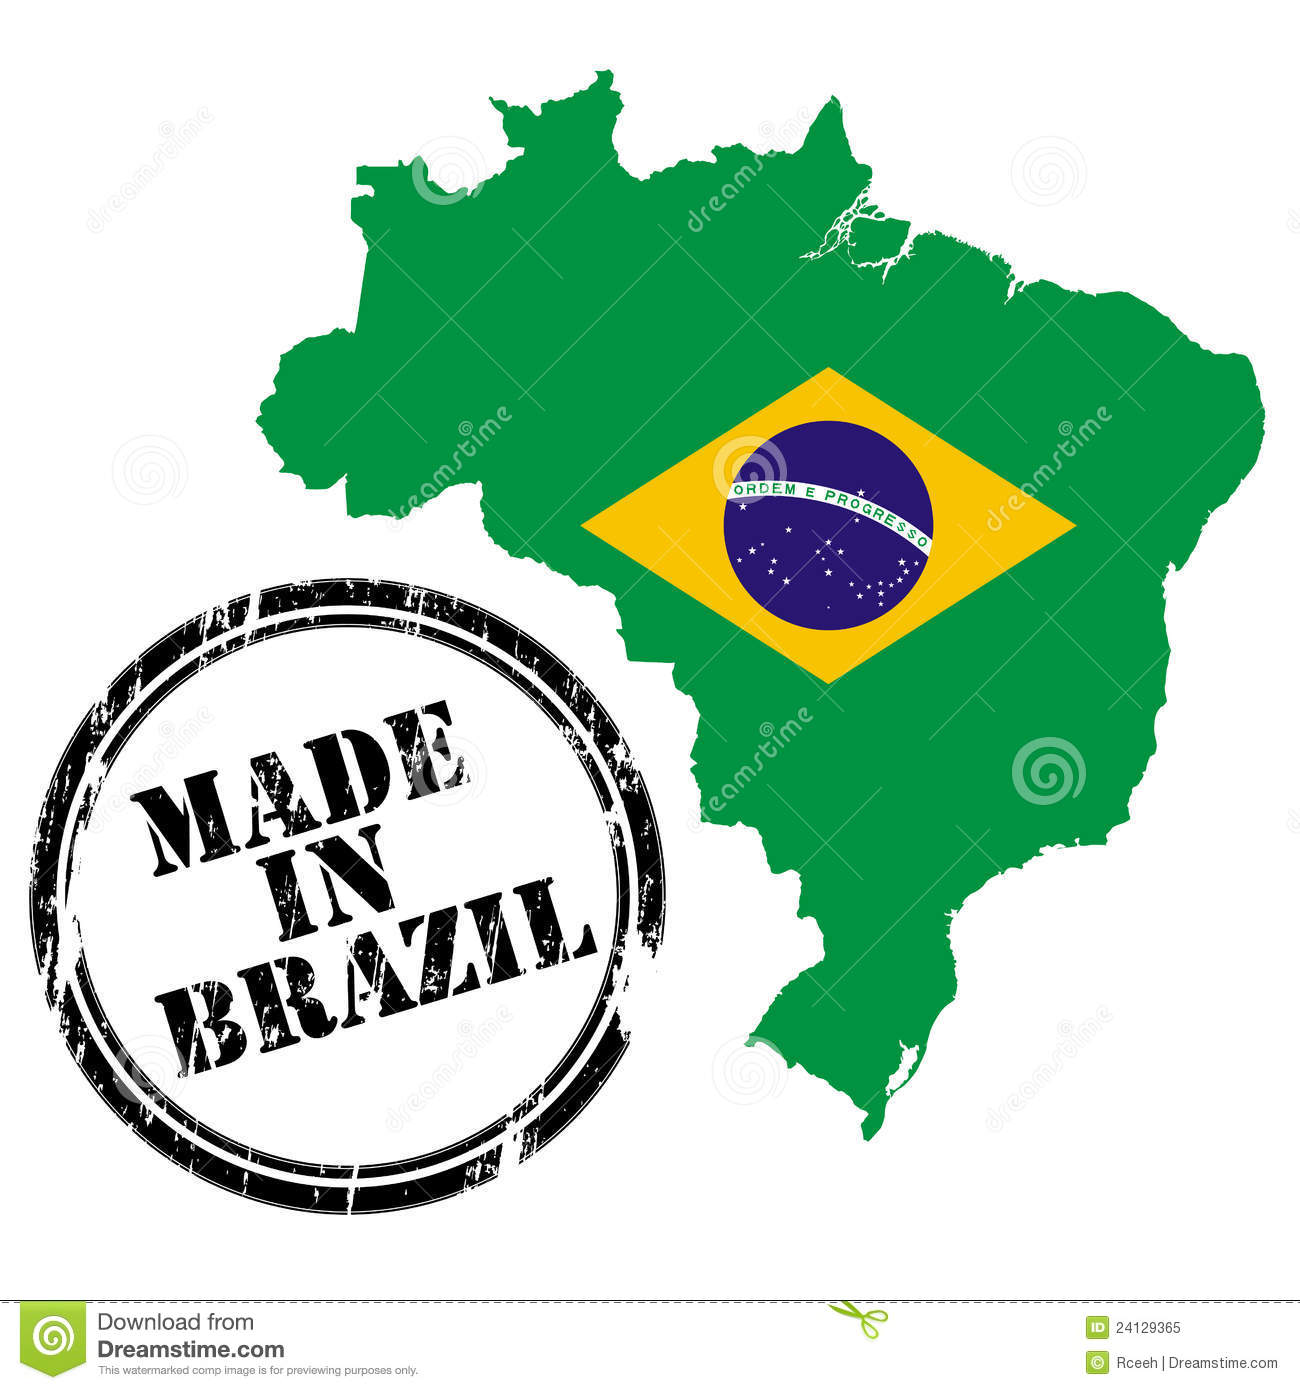 Made In Brazil Royalty Free Stock Photo - Image: 24129365